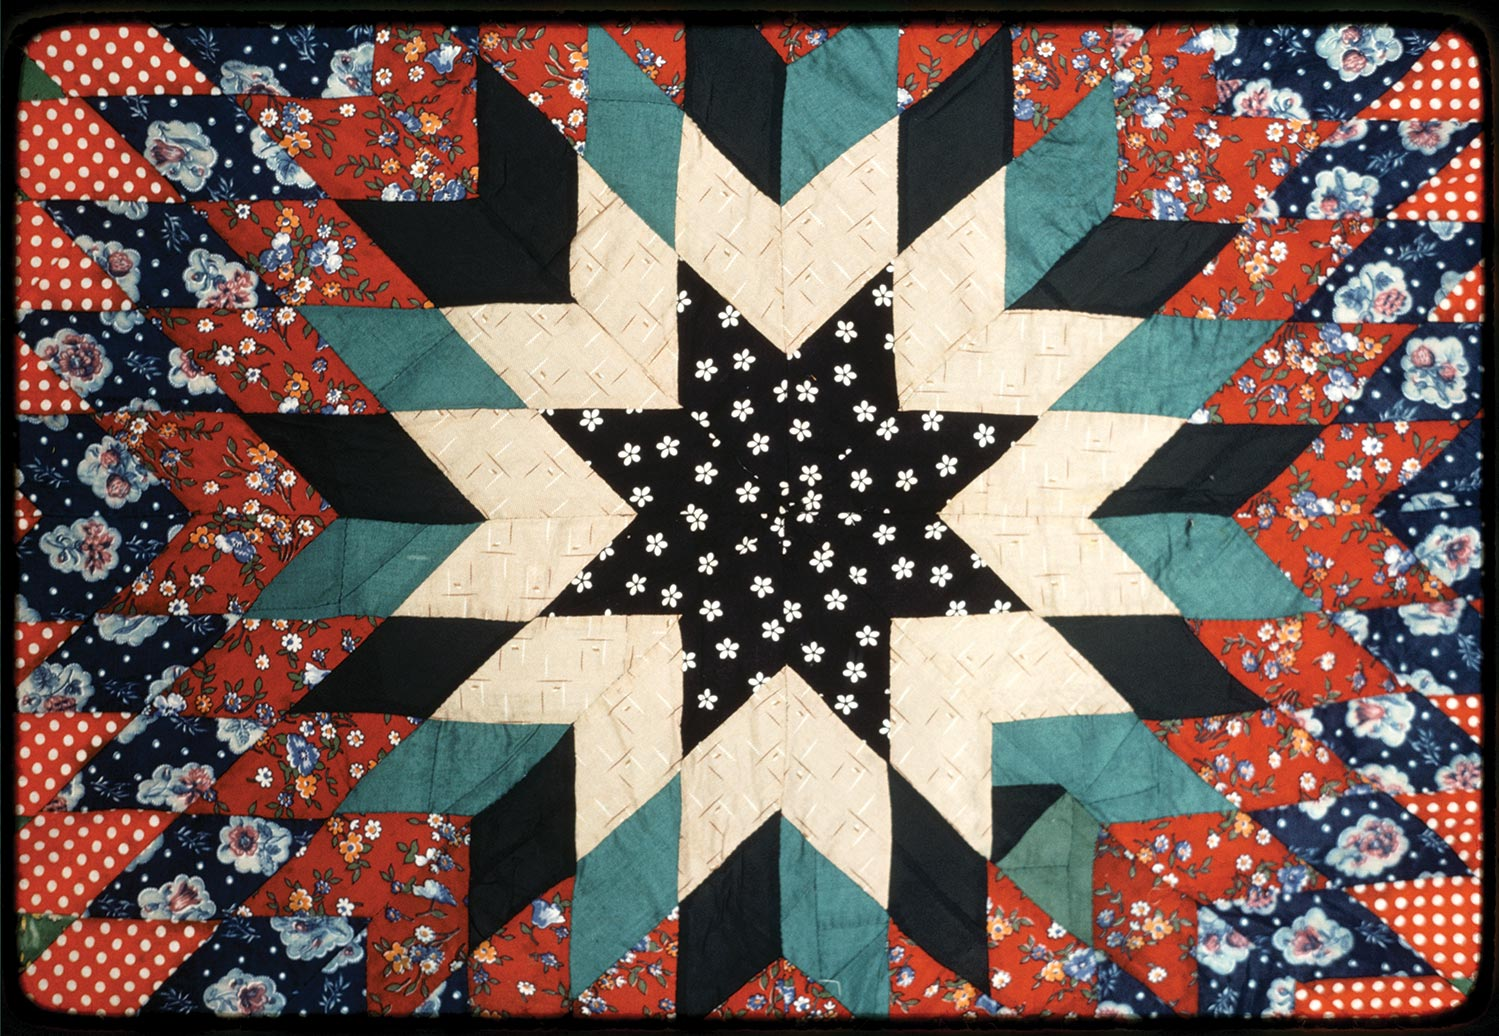 A Lone Star quilt created by Mrs. Sam T Smith. Photo by Geraldine Niva Johnson. Image retrieved from American Folklife Center at the Library of Congress.